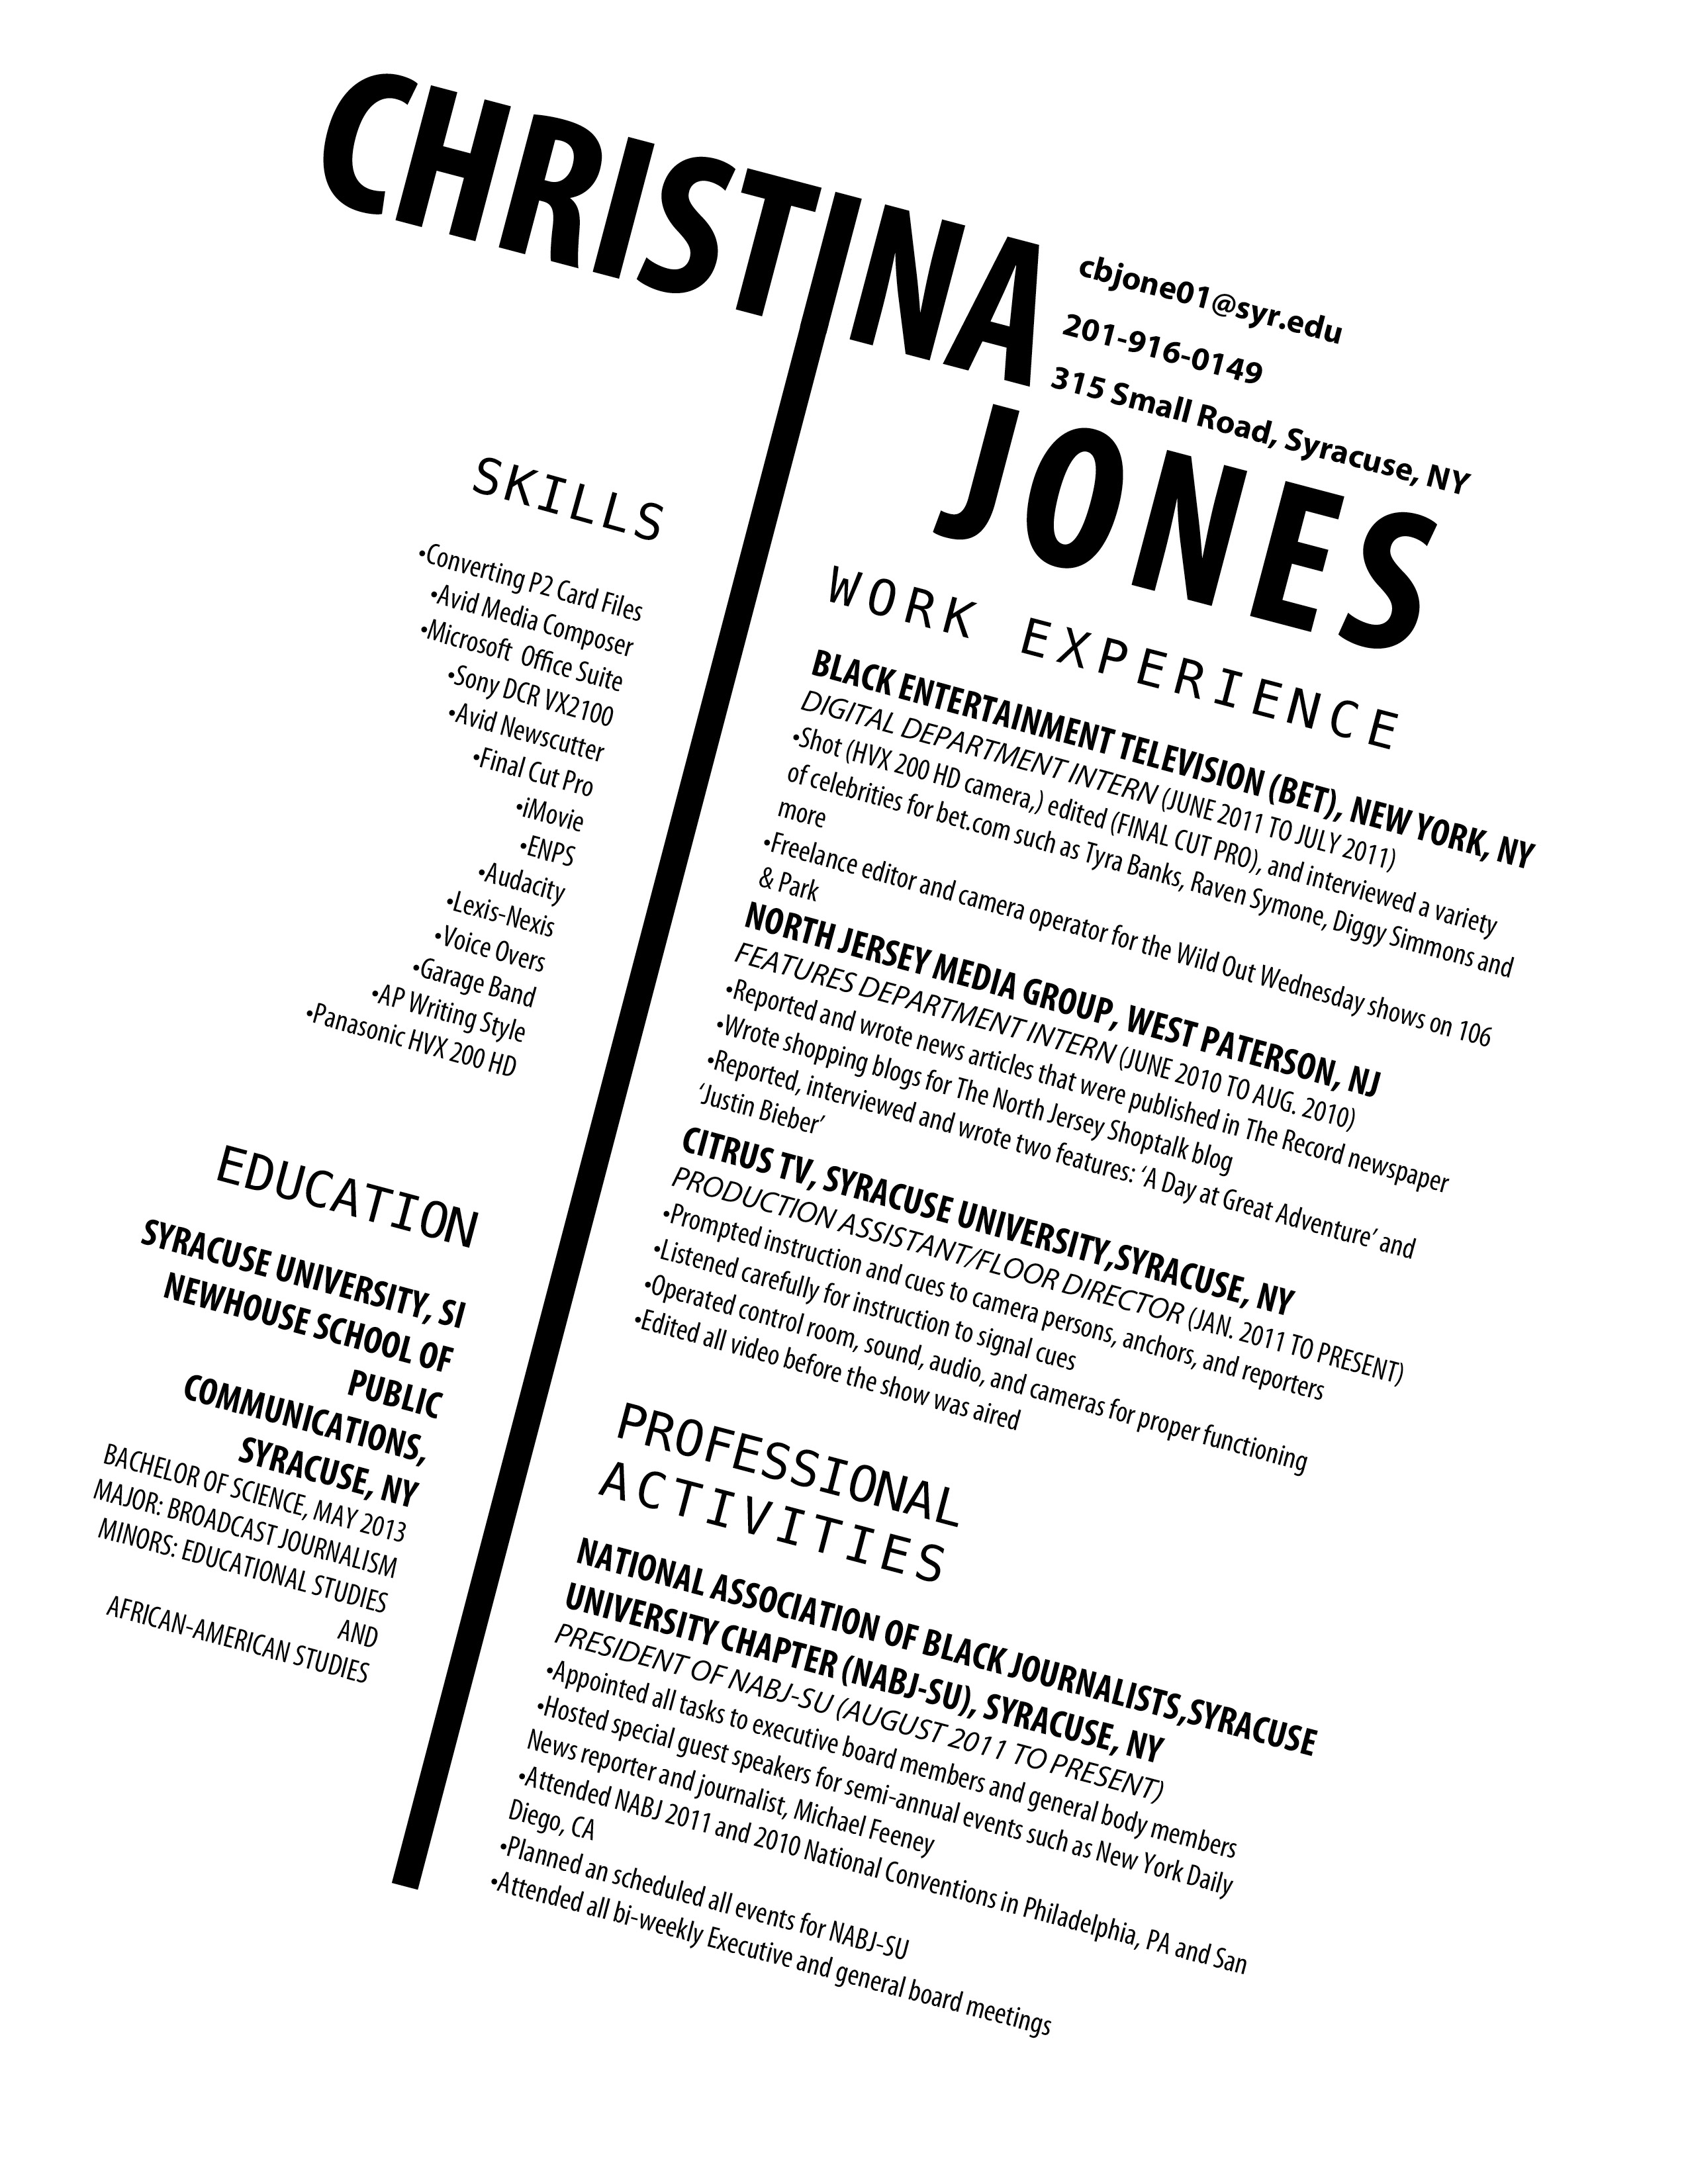 could be an interesting resume for someone applying for a magazine newspaper design job not